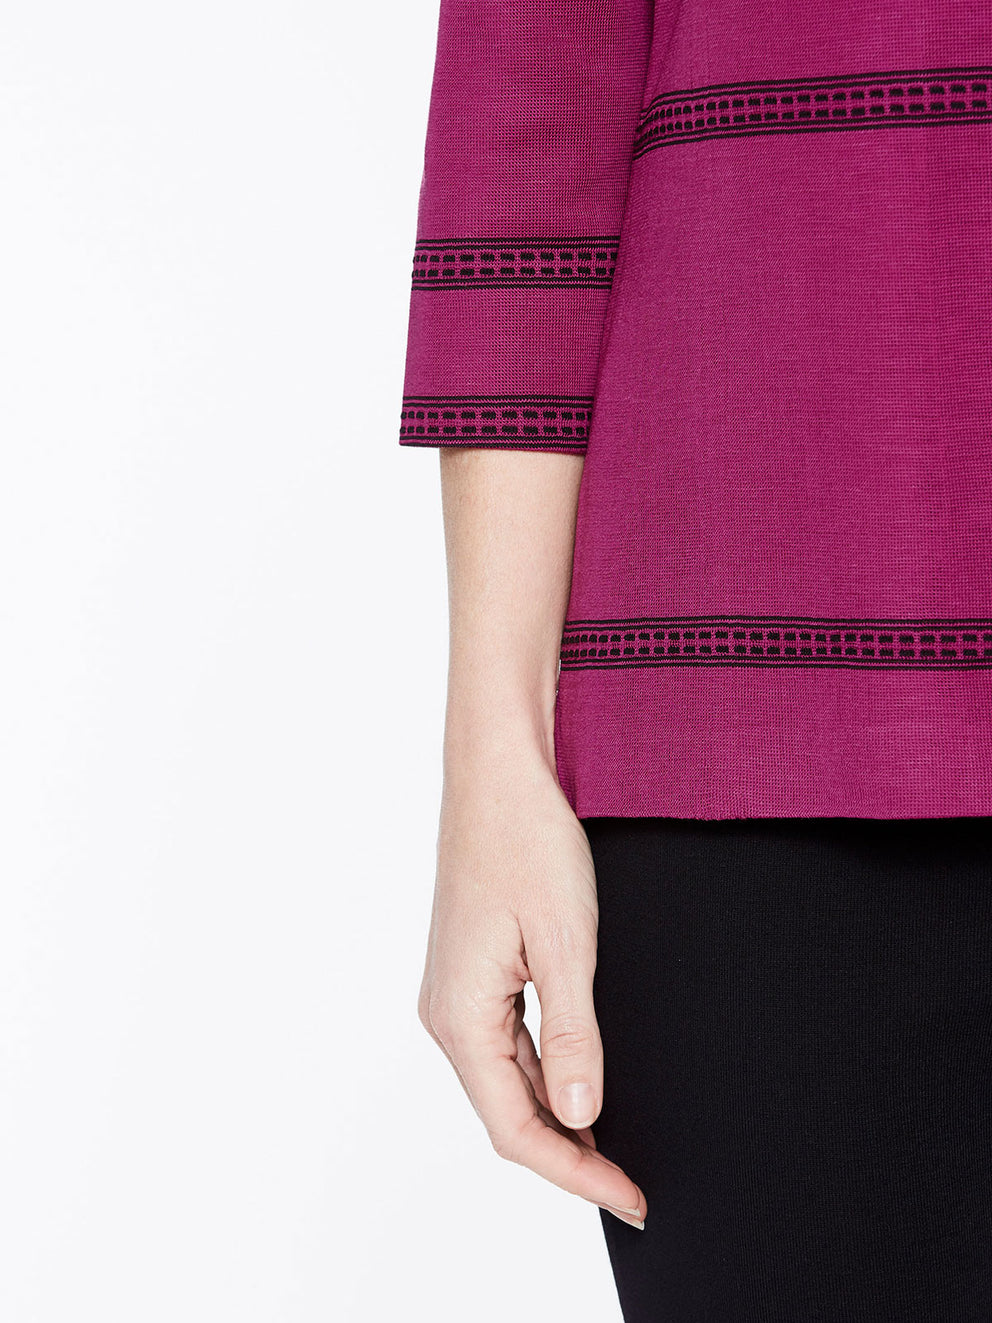 Mandarin Collar with Line Detail Jacket Color Fuchsia Rose/Black Premium Detail